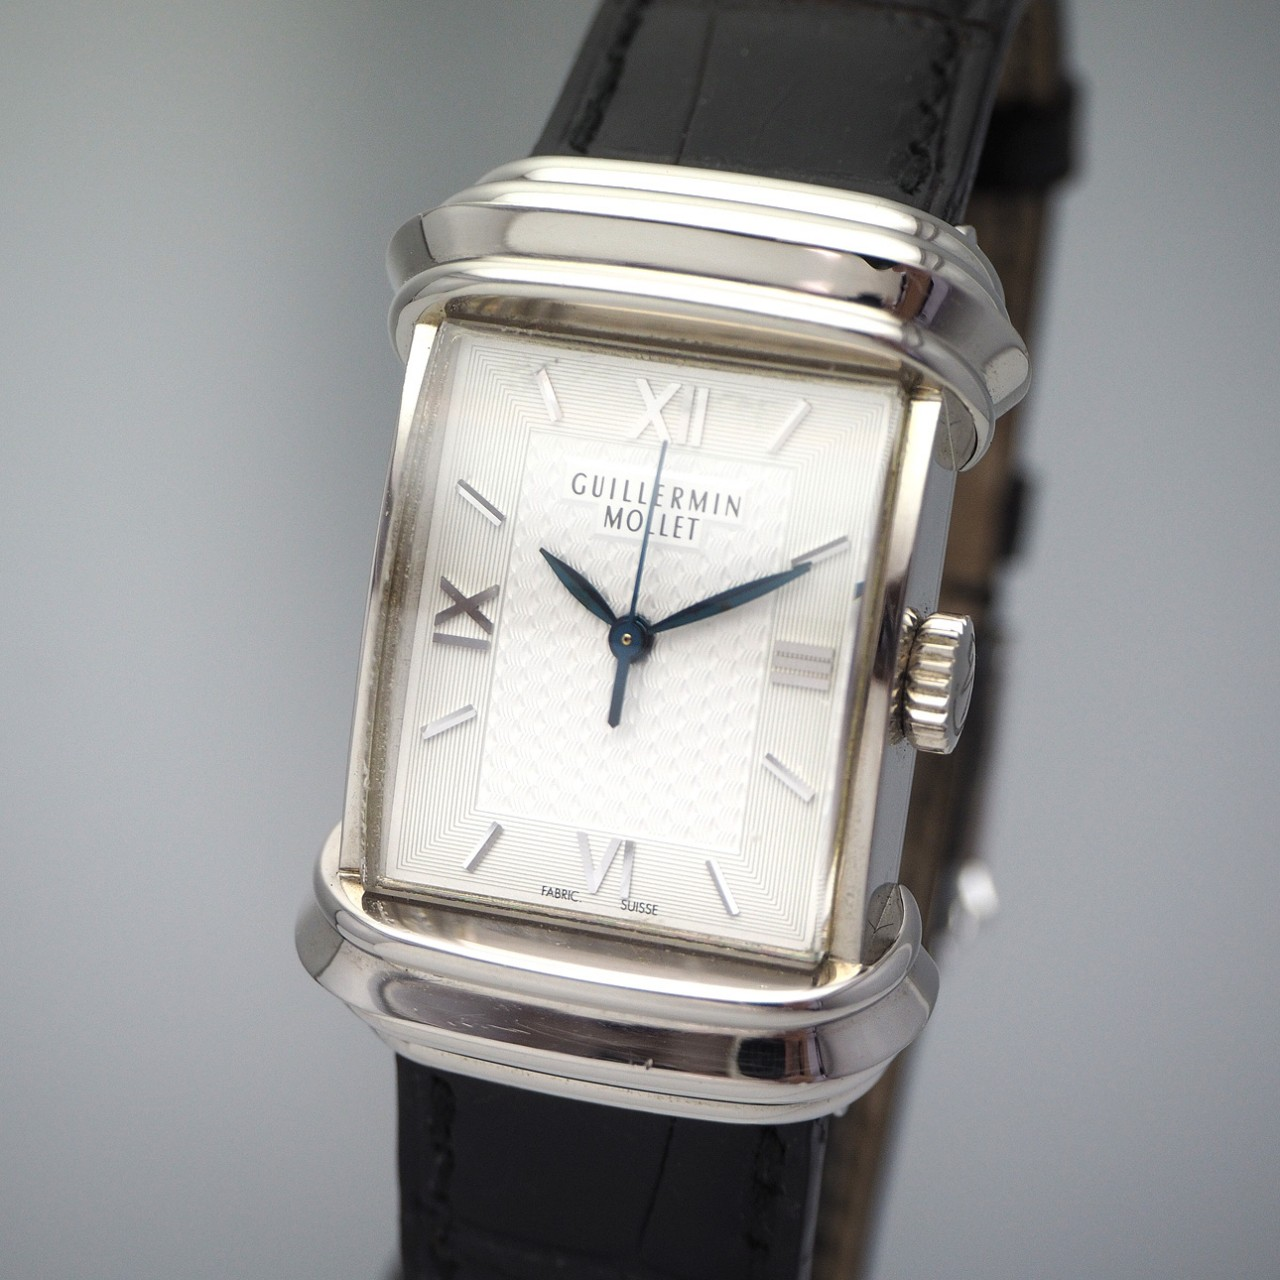 Guillermin Mollet Premier Edition 2003, WG 18k/750, Limited Edition 150